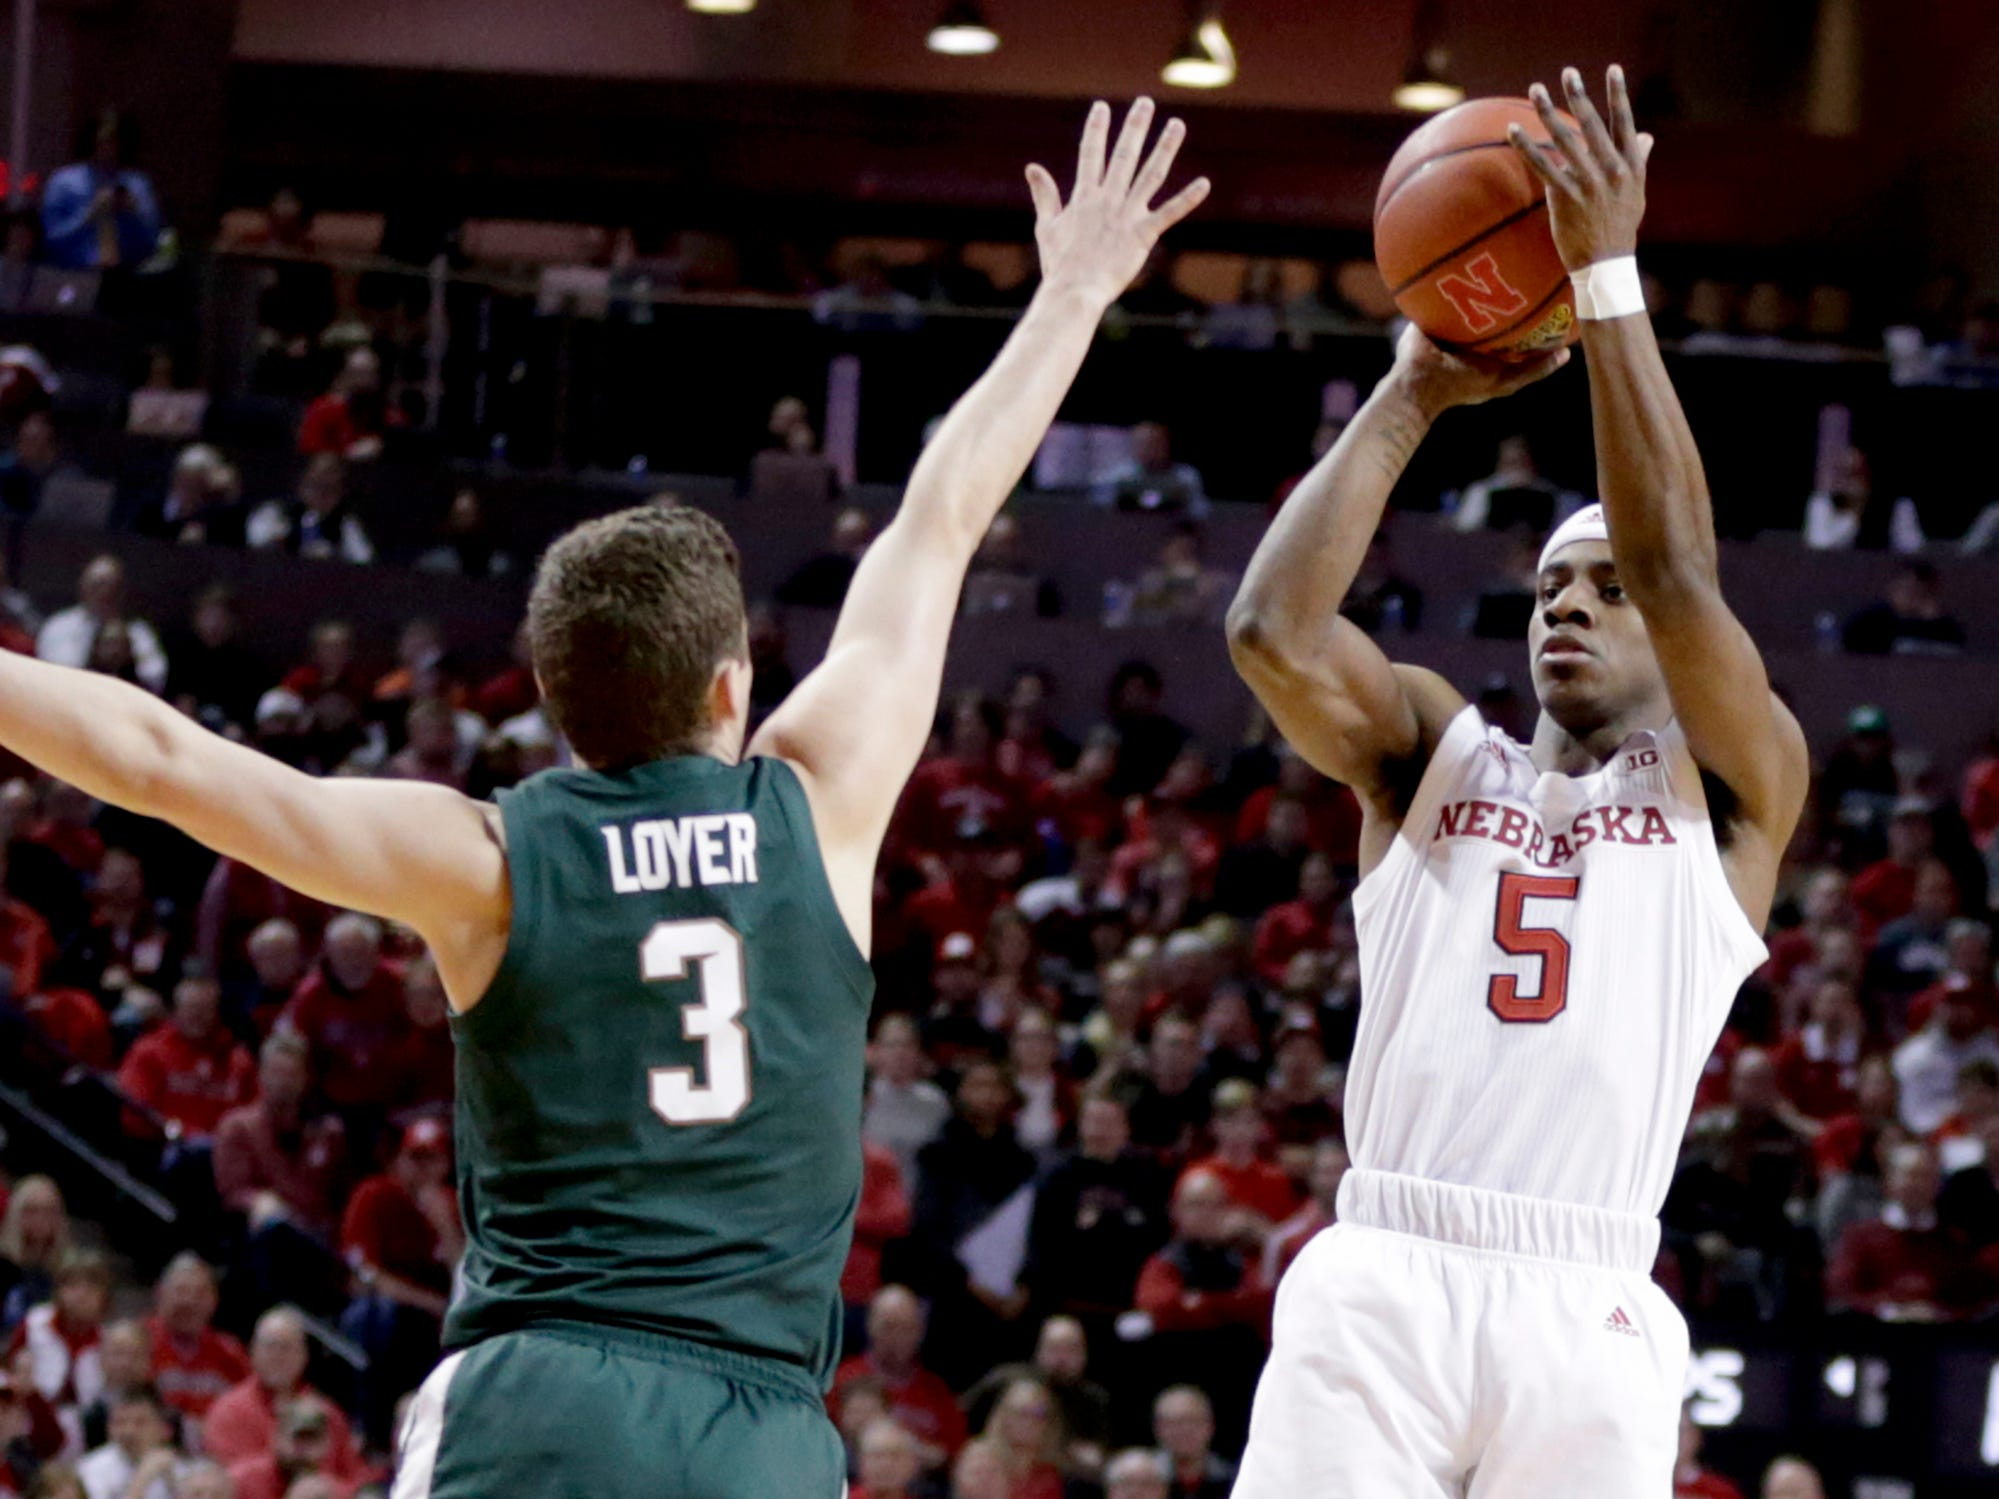 Nebraska's Glynn Watson Jr. (5) shoots over Michigan State's FosterLoyer (3) during the first half of an NCAA college basketball game in Lincoln, Neb., Thursday, Jan. 17, 2019.